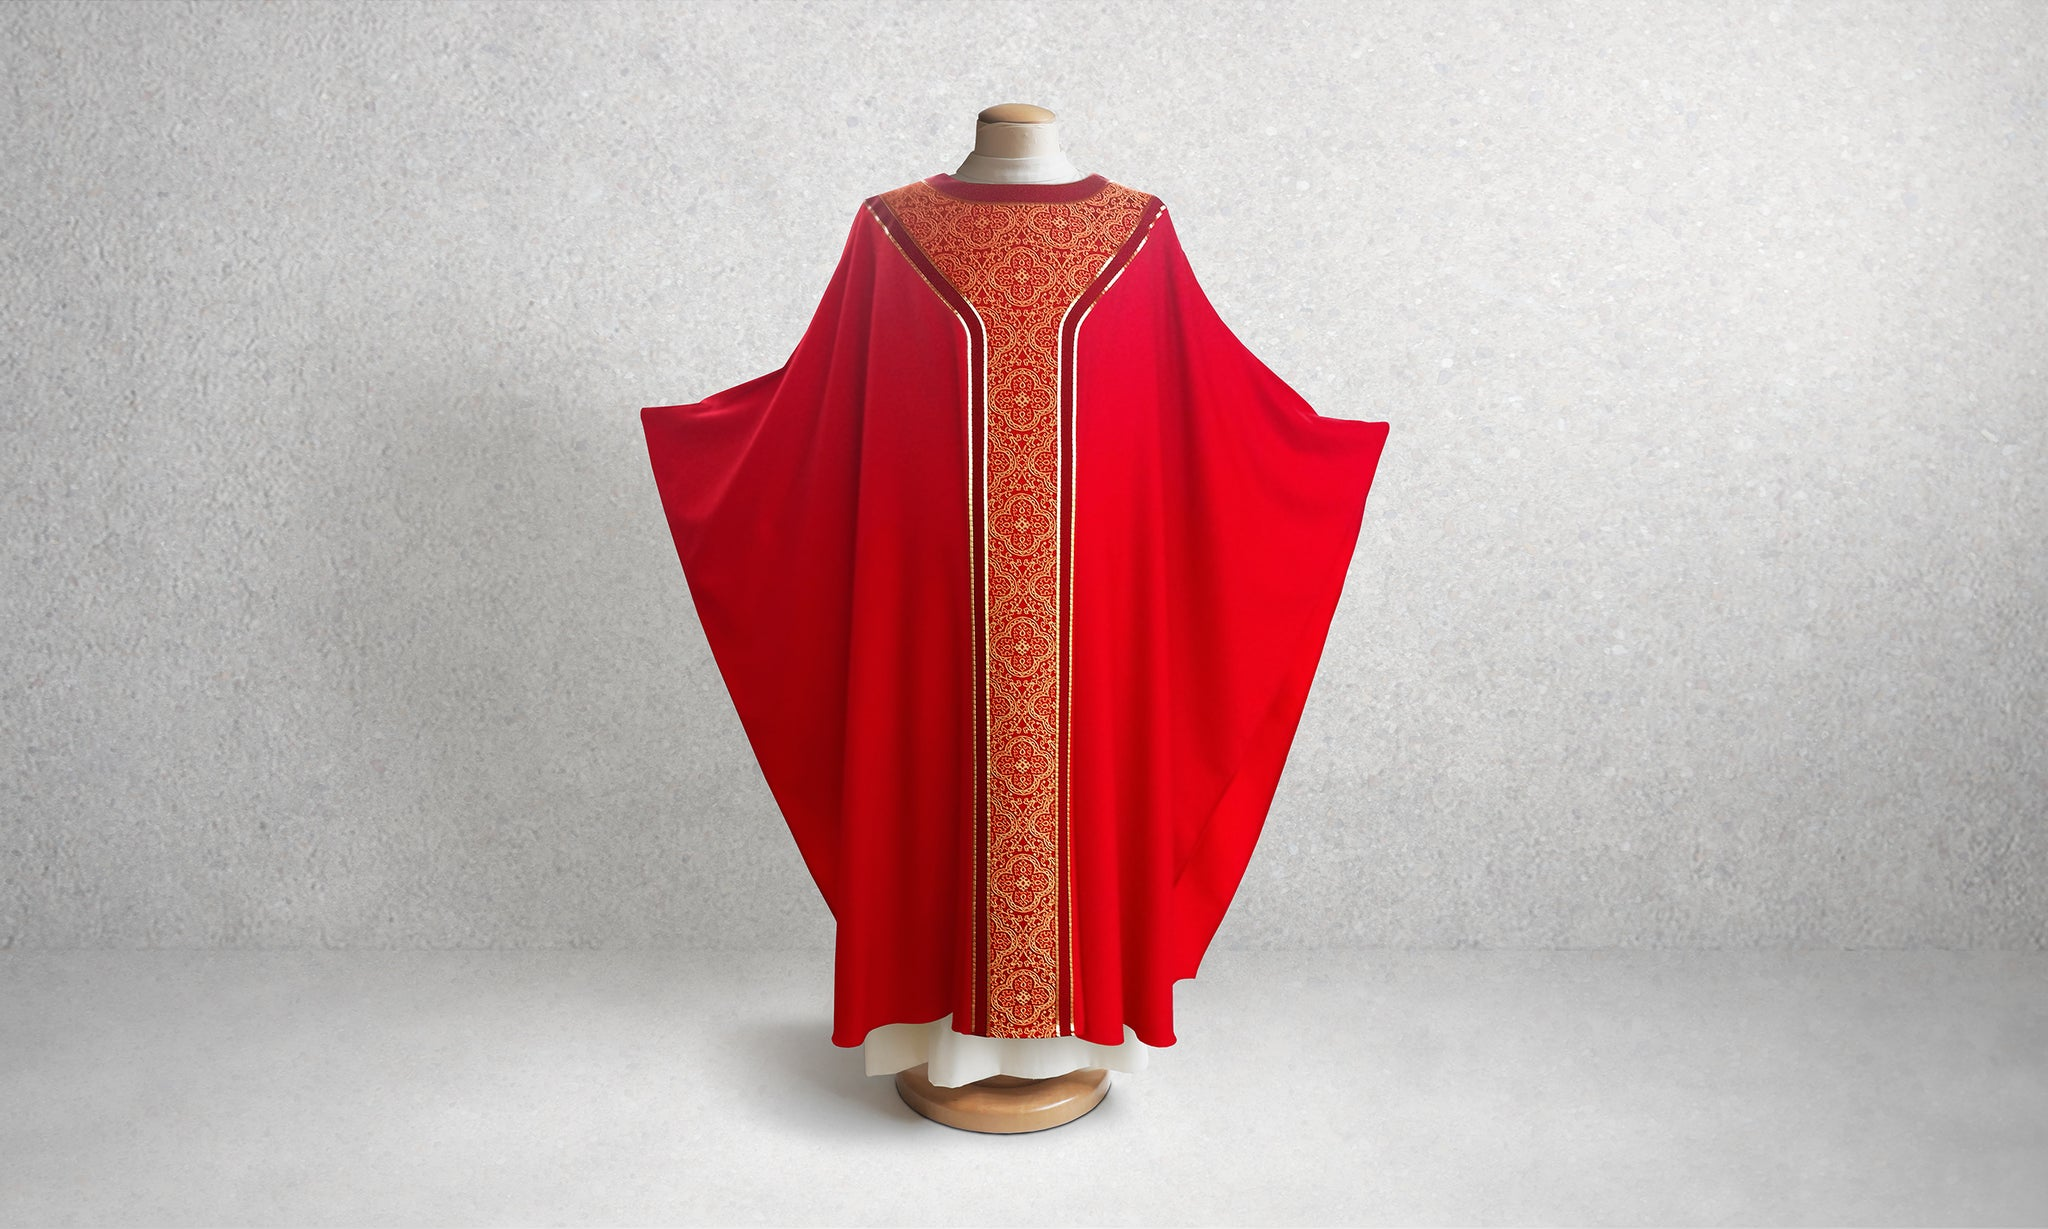 601 Classic Yoke Chasuble in Red